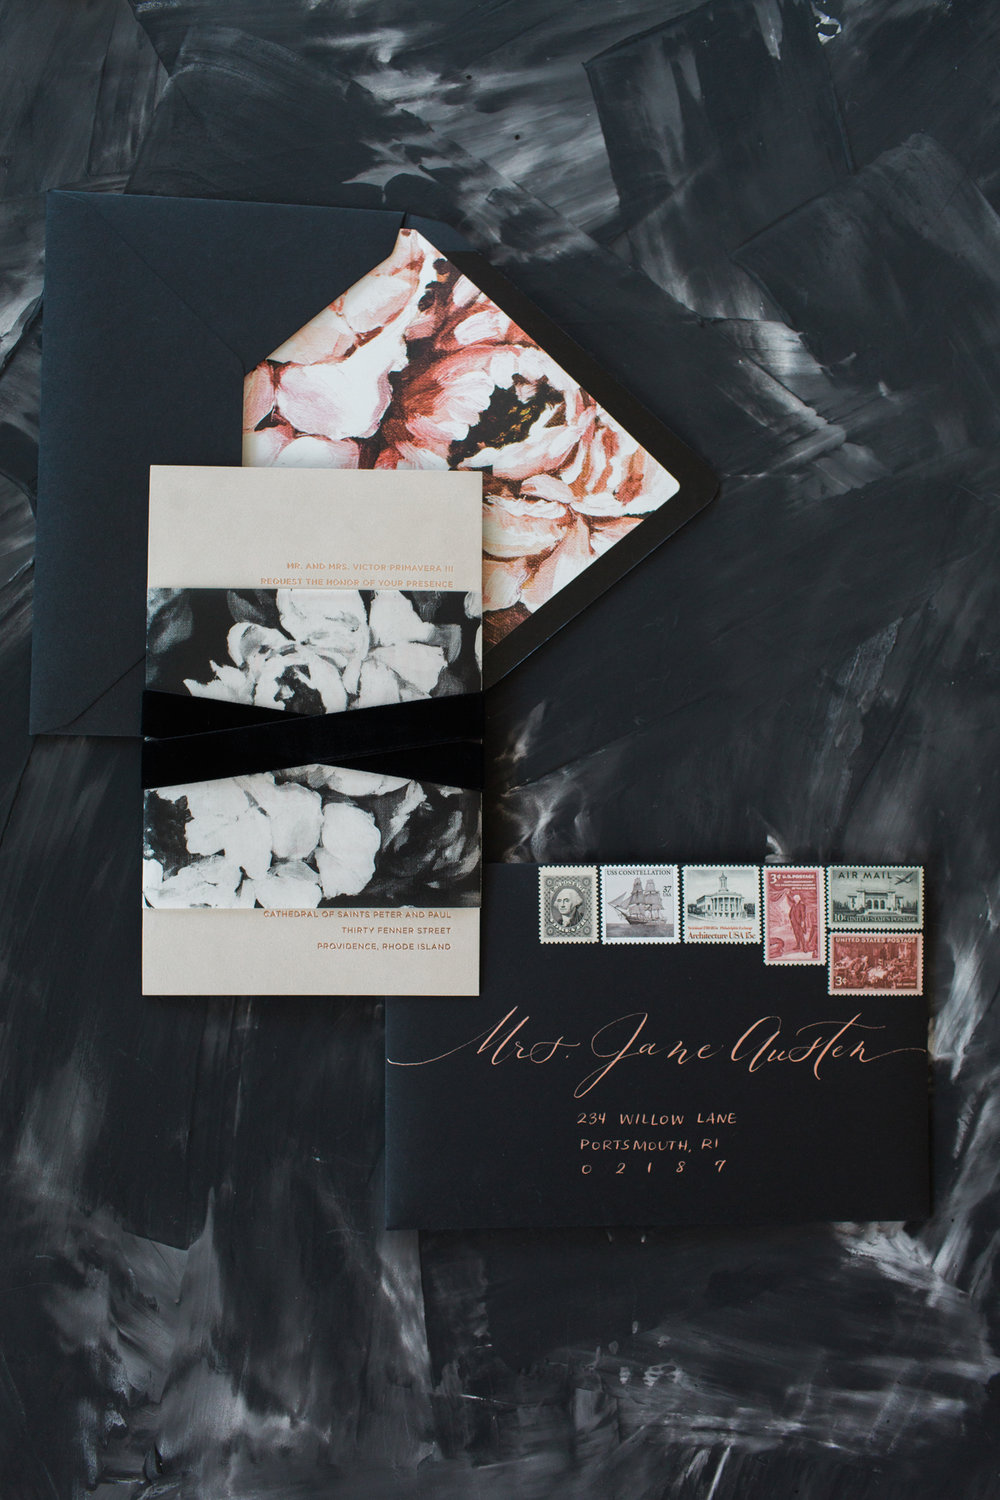 AP_Wedding_Invites_Rose-Gold-Foil-Newport-Moody-Floral-Invitations-champagne-and-ink-Molly-Lo-5.jpg